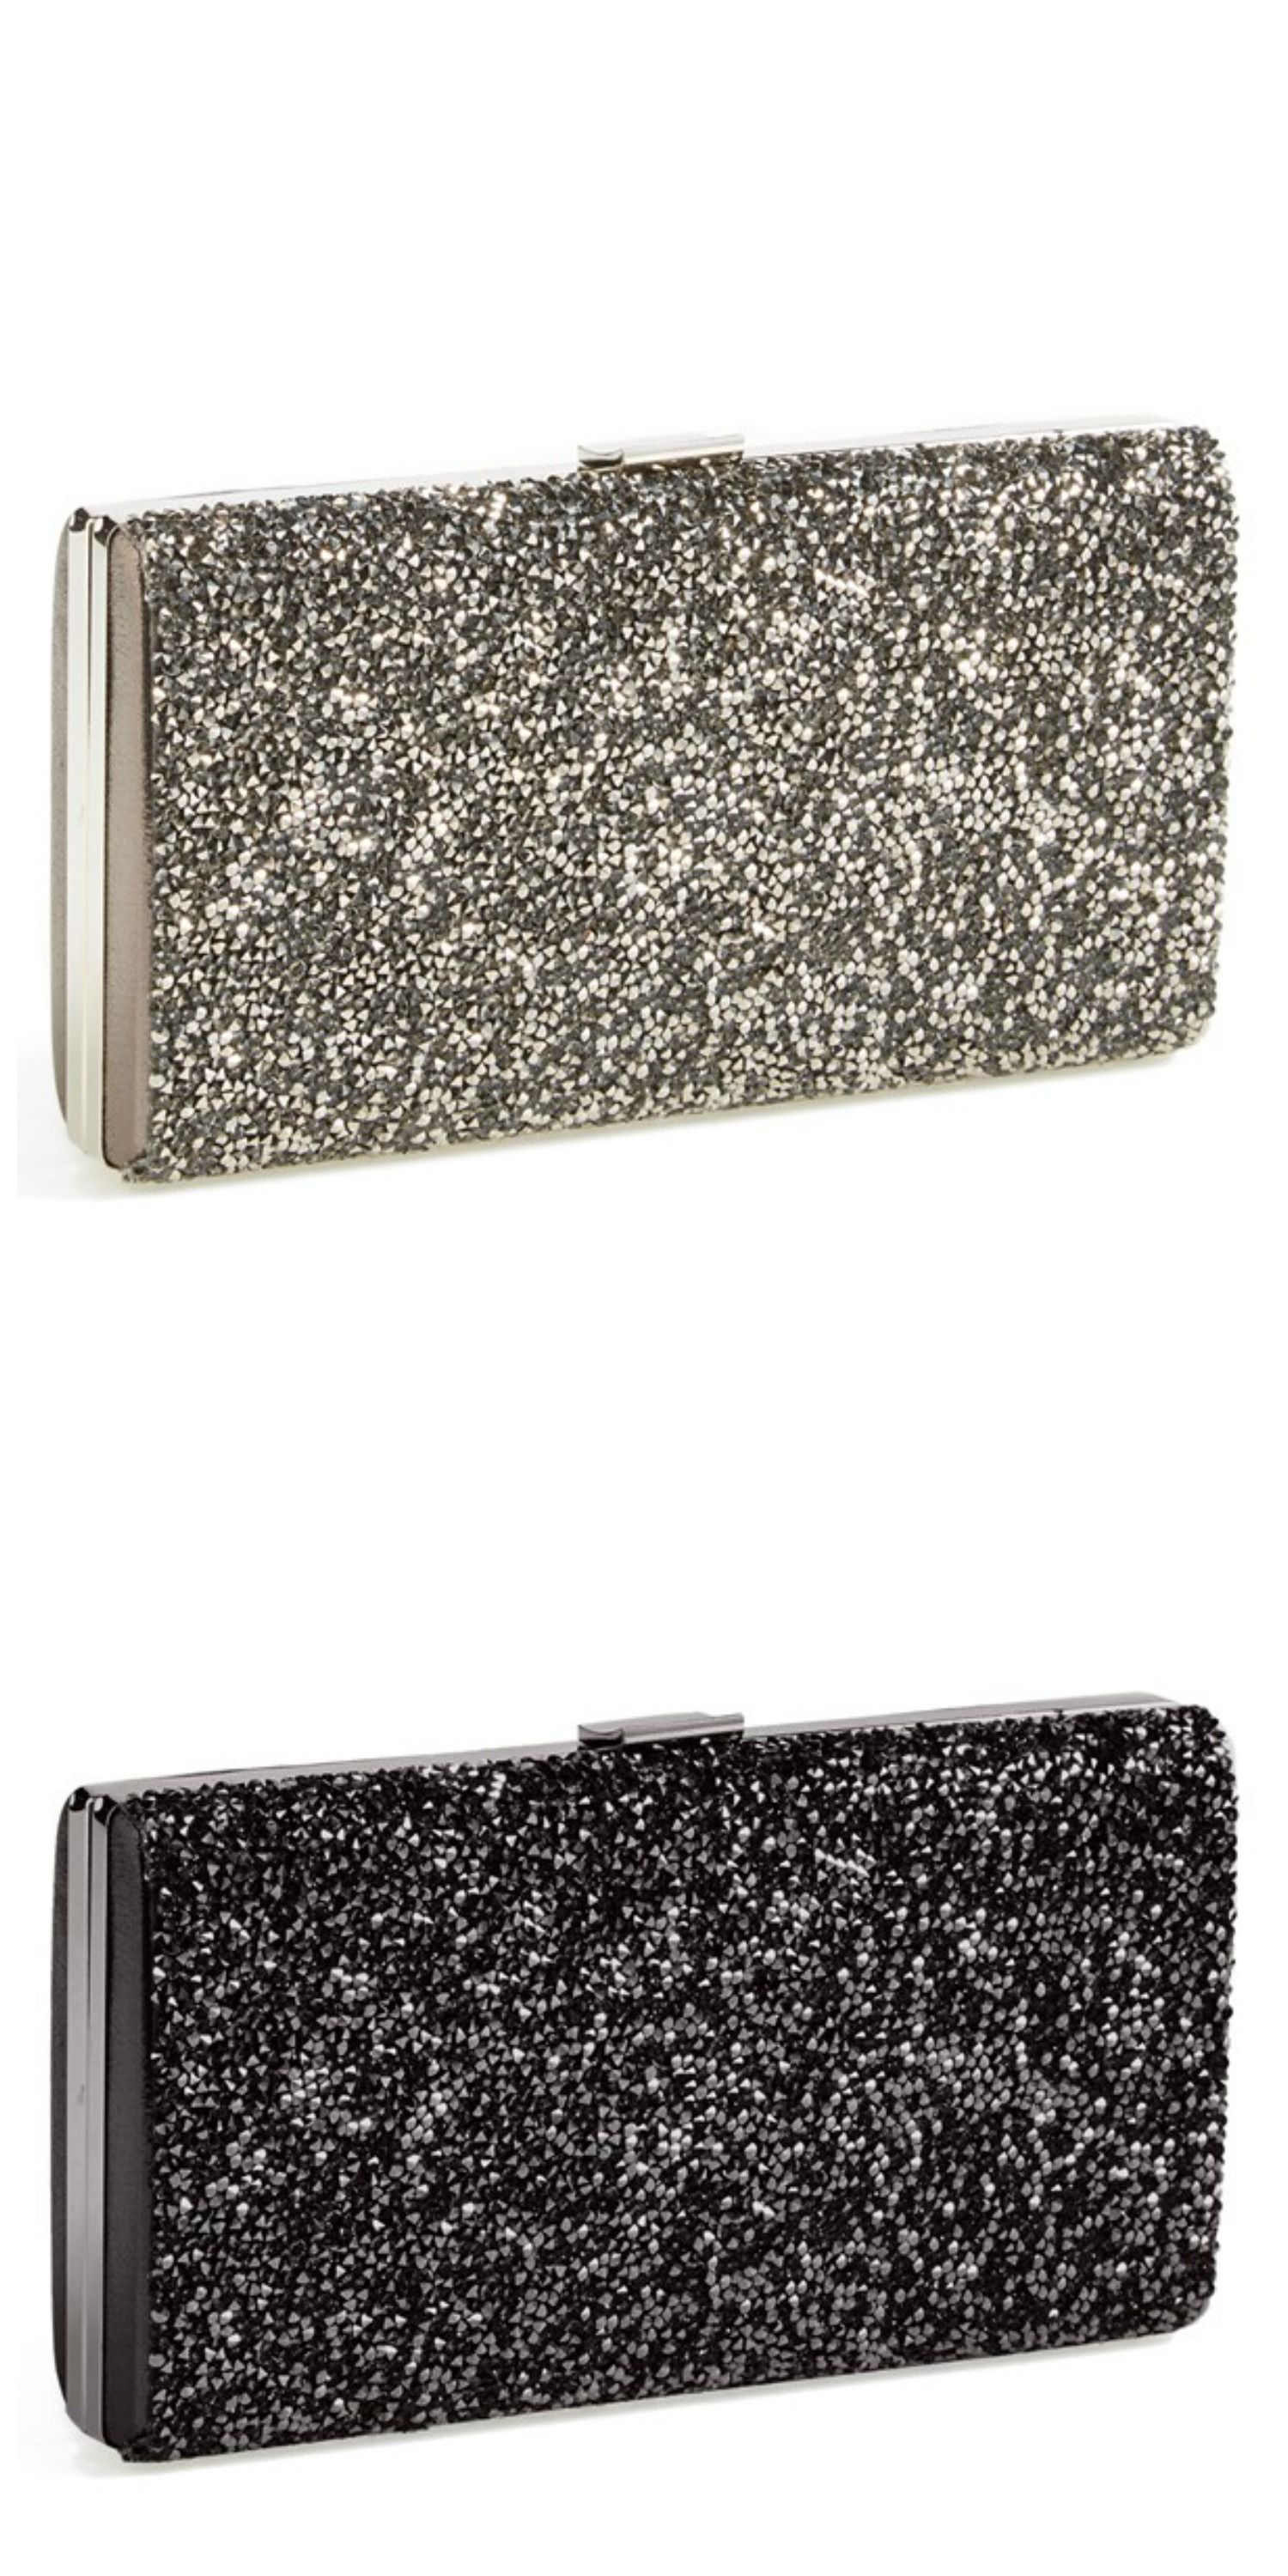 This crystal glitter clutch is on the prom wish list